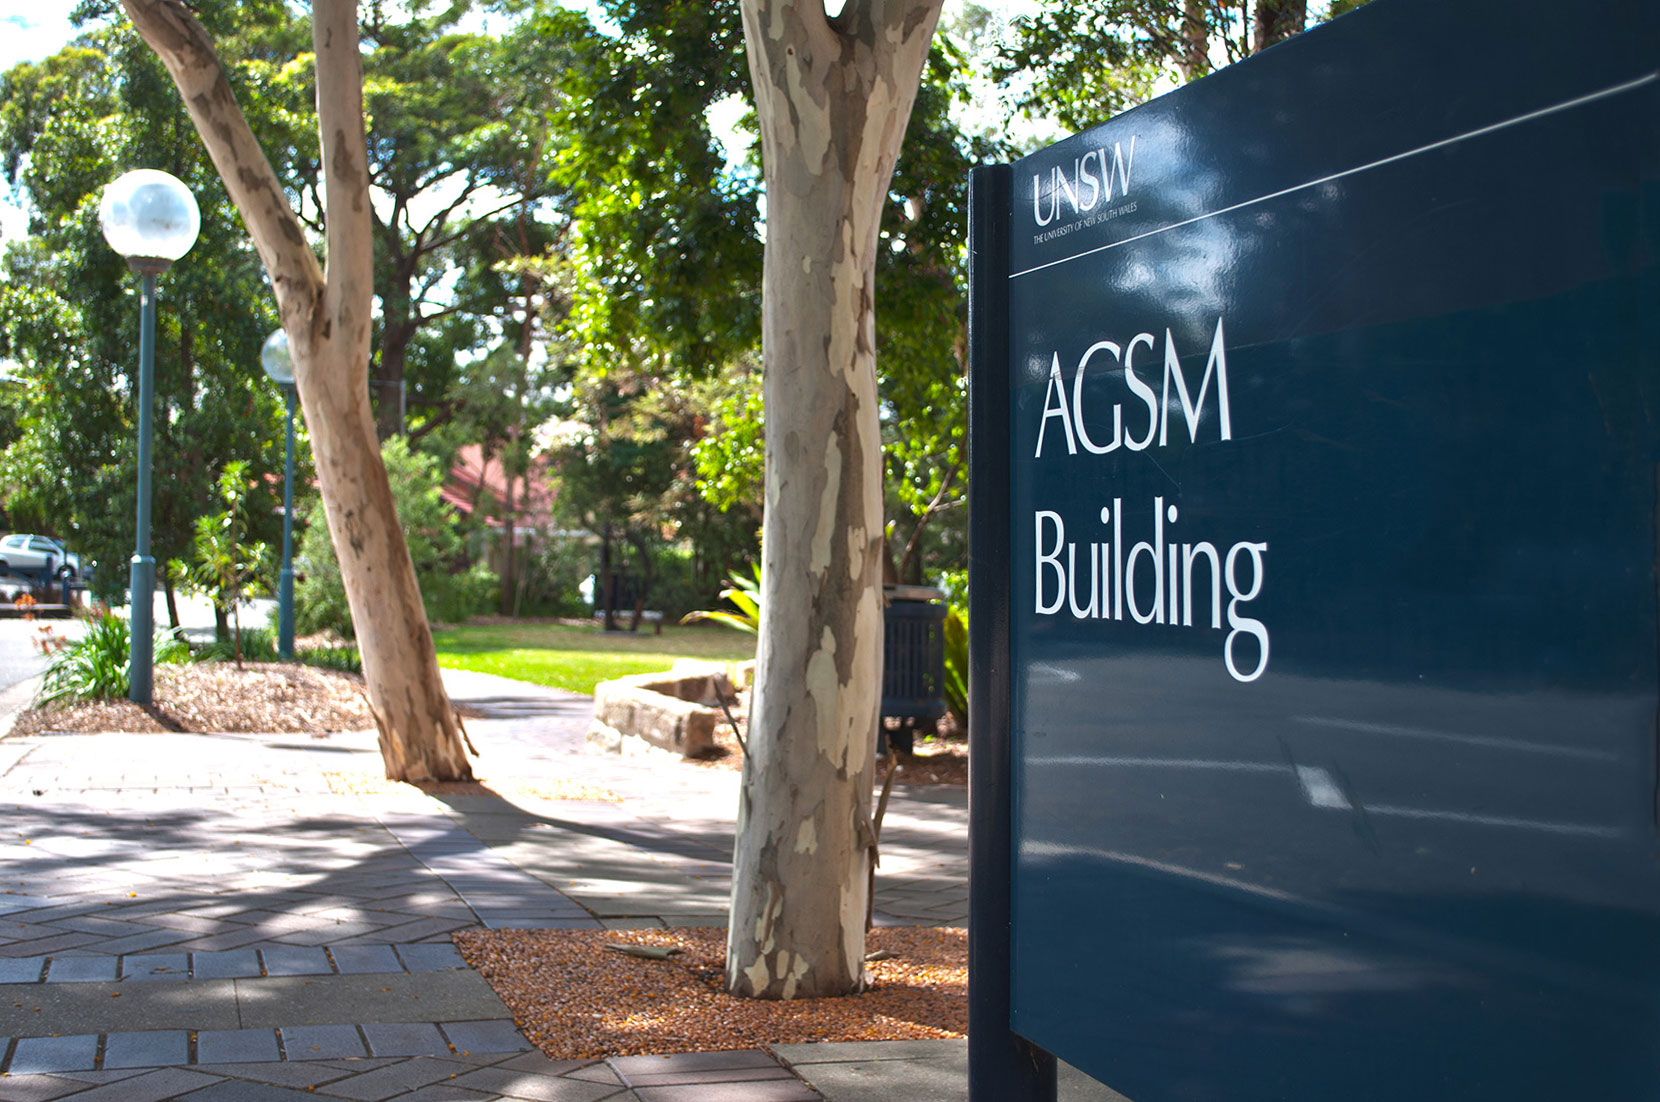 Trees and AGSM Sign